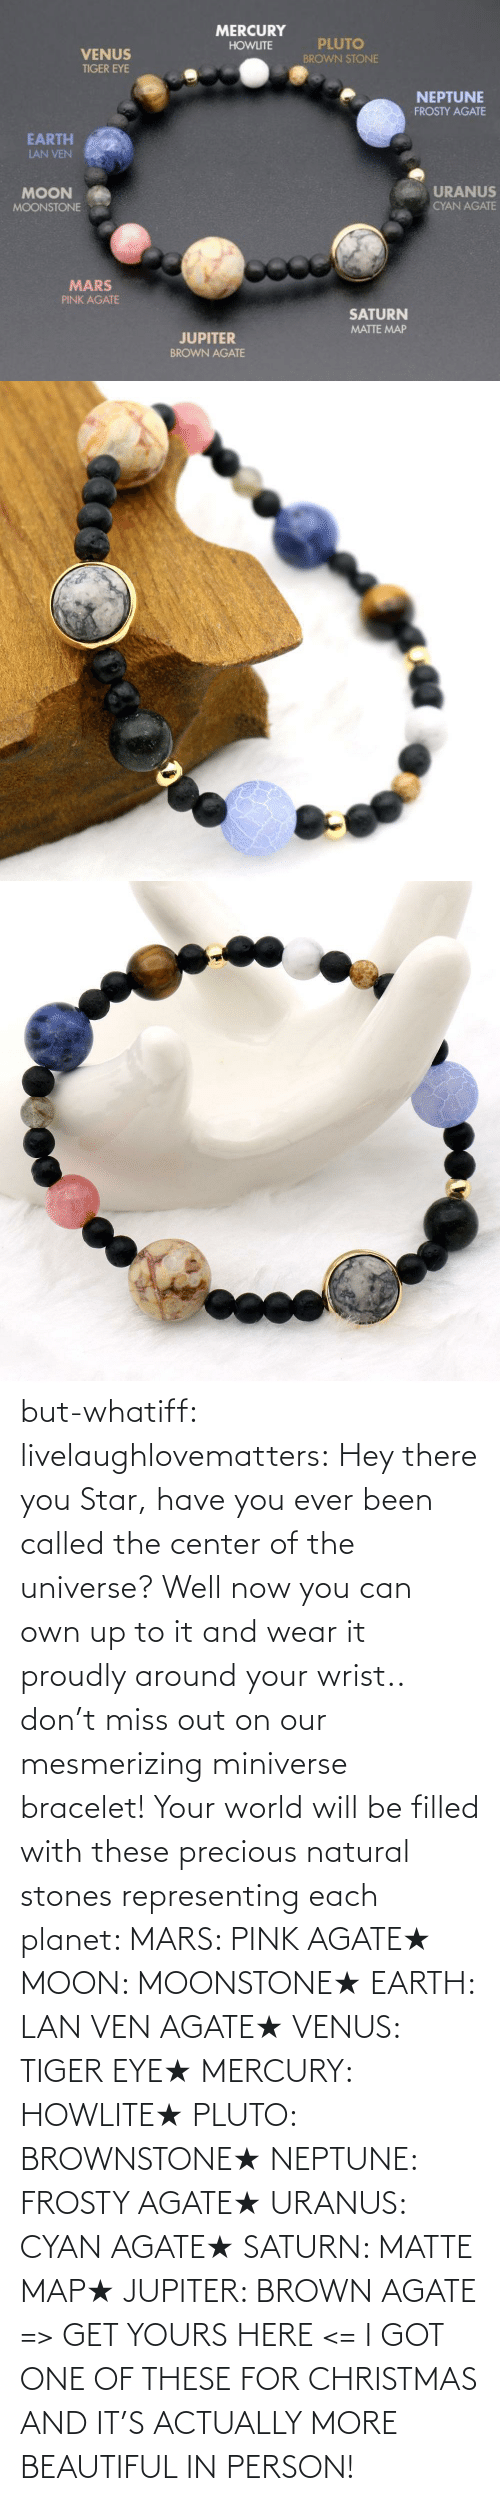 hey: but-whatiff:  livelaughlovematters:  Hey there you Star, have you ever been called the center of the universe? Well now you can own up to it and wear it proudly around your wrist.. don't miss out on our mesmerizing miniverse bracelet! Your world will be filled with these precious natural stones representing each planet:  MARS: PINK AGATE★ MOON: MOONSTONE★ EARTH: LAN VEN AGATE★ VENUS: TIGER EYE★ MERCURY: HOWLITE★ PLUTO: BROWNSTONE★ NEPTUNE: FROSTY AGATE★ URANUS: CYAN AGATE★ SATURN: MATTE MAP★ JUPITER: BROWN AGATE => GET YOURS HERE <=  I GOT ONE OF THESE FOR CHRISTMAS AND IT'S ACTUALLY MORE BEAUTIFUL IN PERSON!